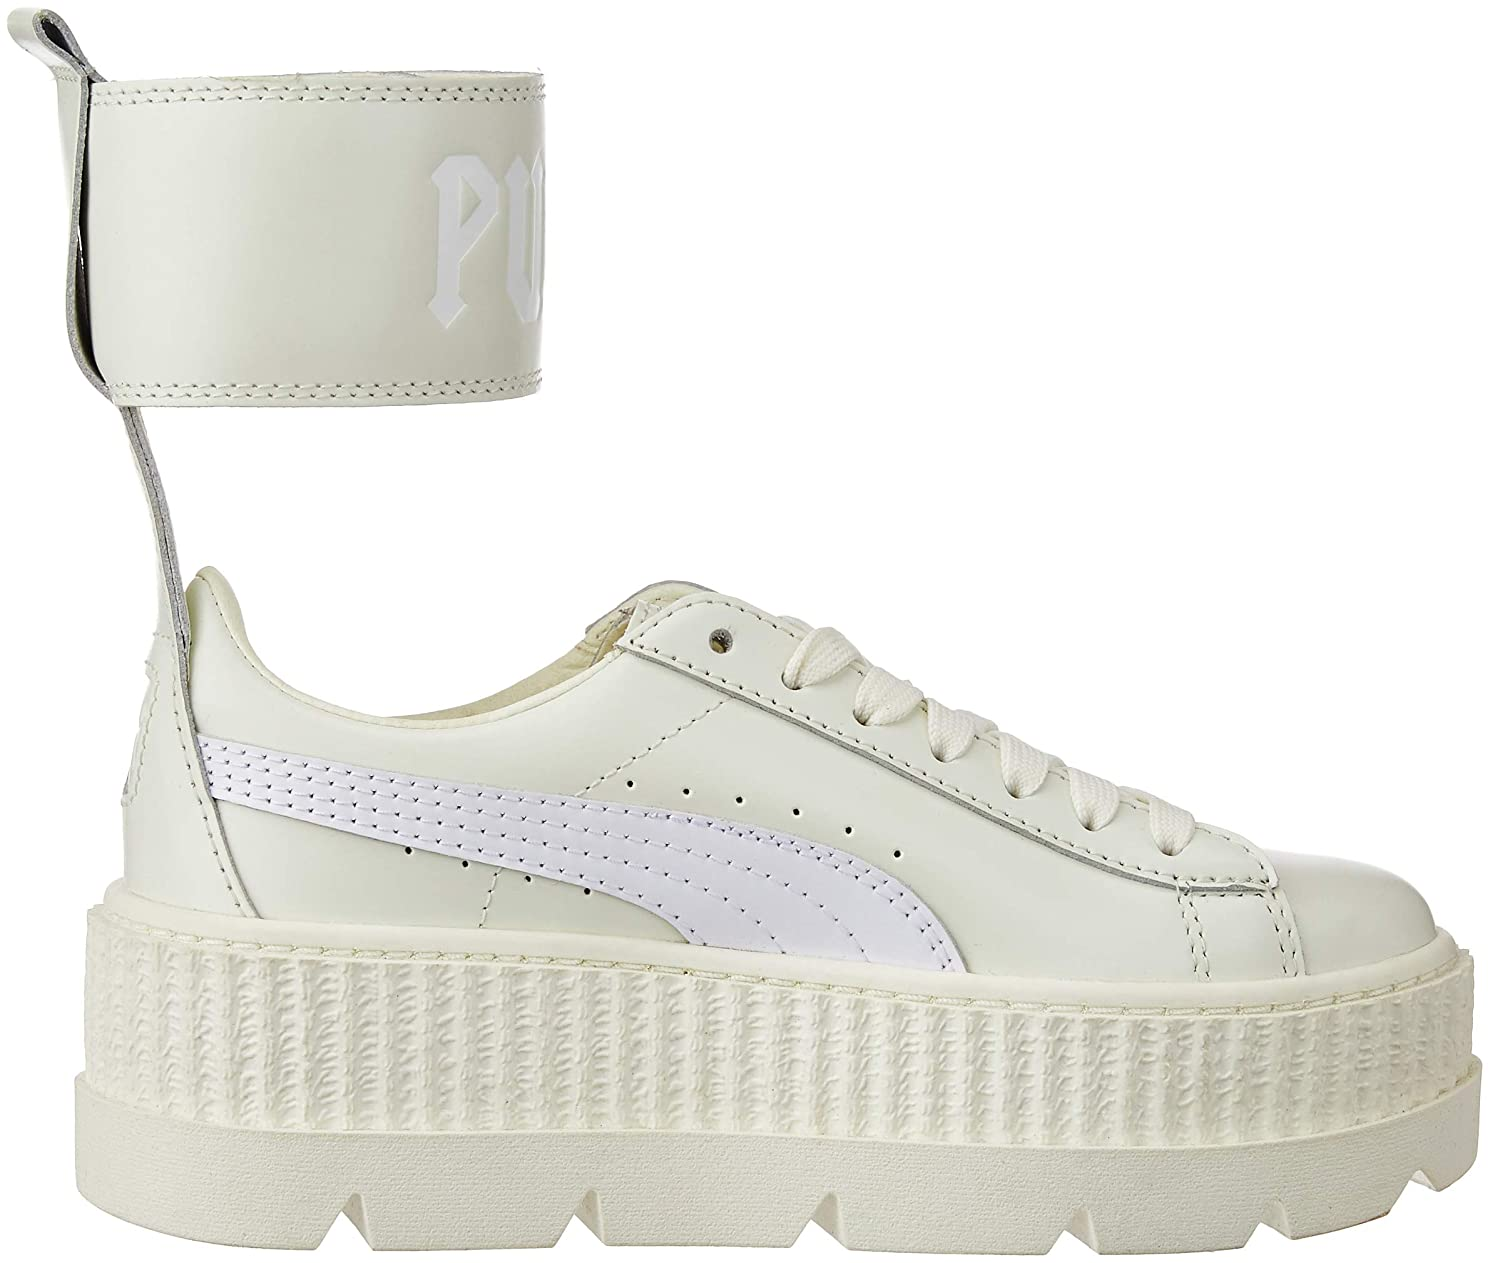 8a99391e0336 Puma Fenty Ankle Strap Sneakers  Amazon.co.uk  Shoes   Bags